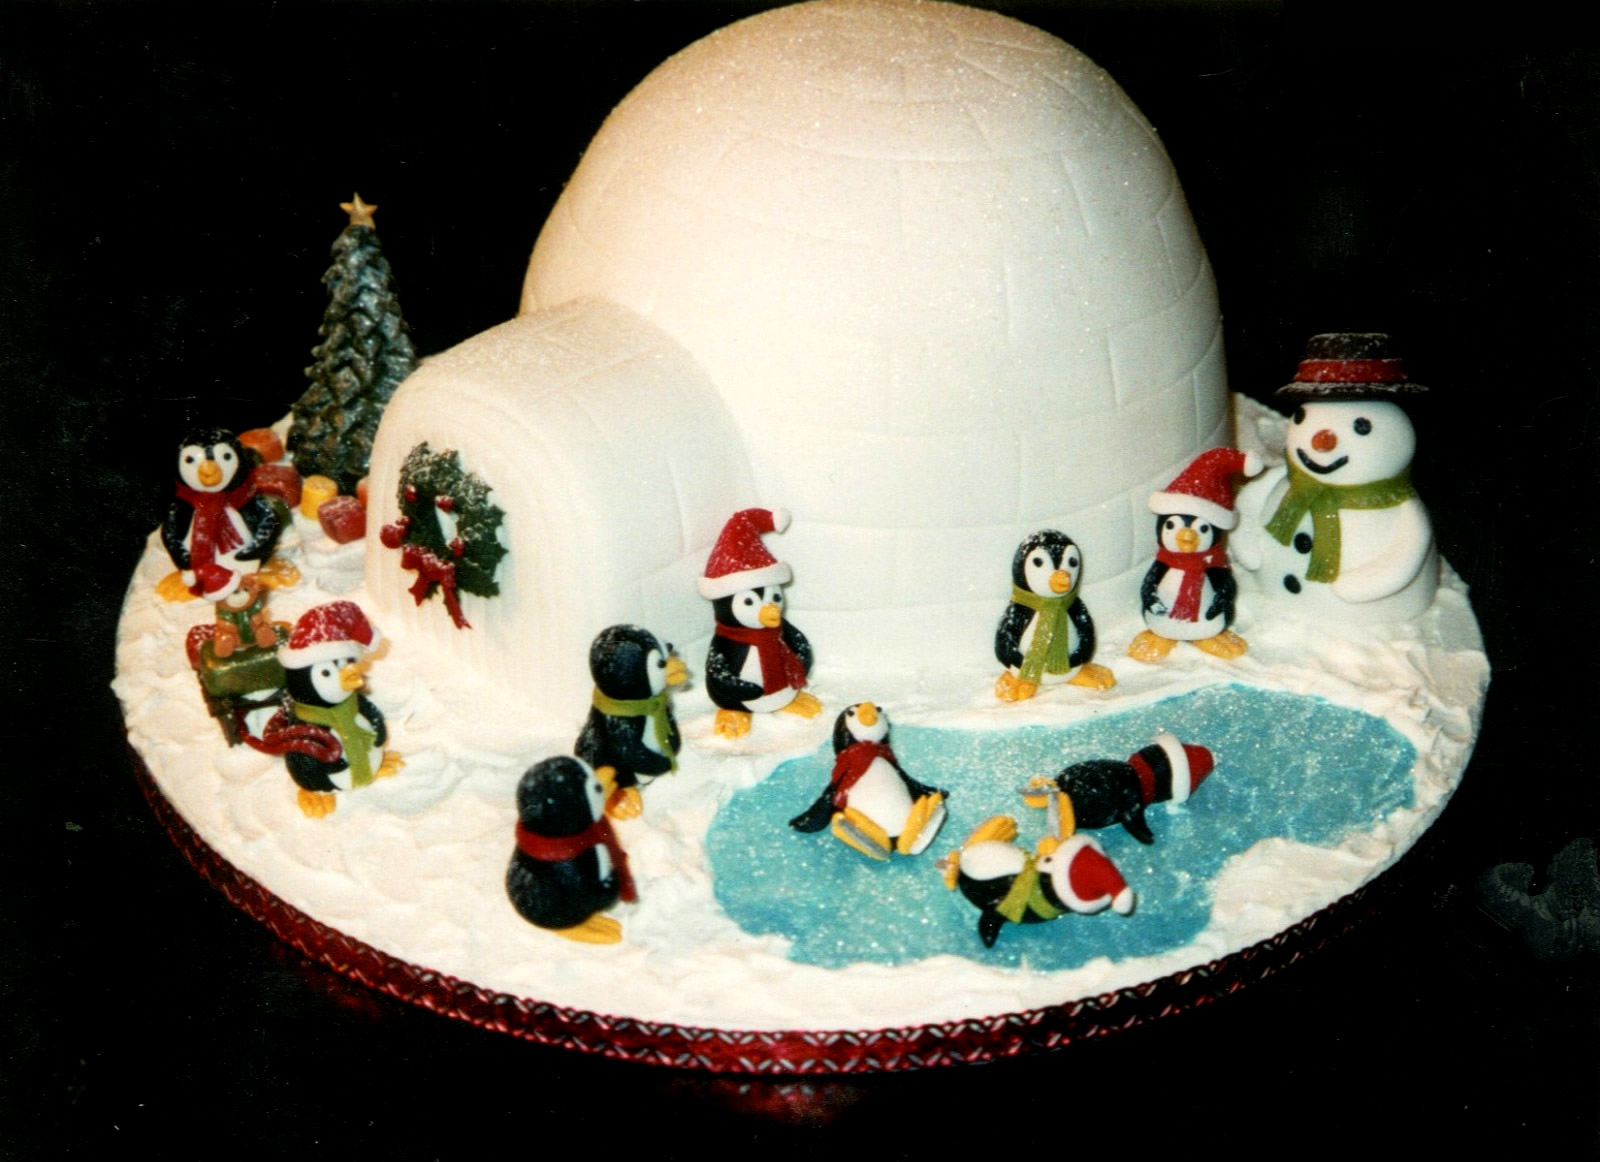 Small Iced Christmas Cake